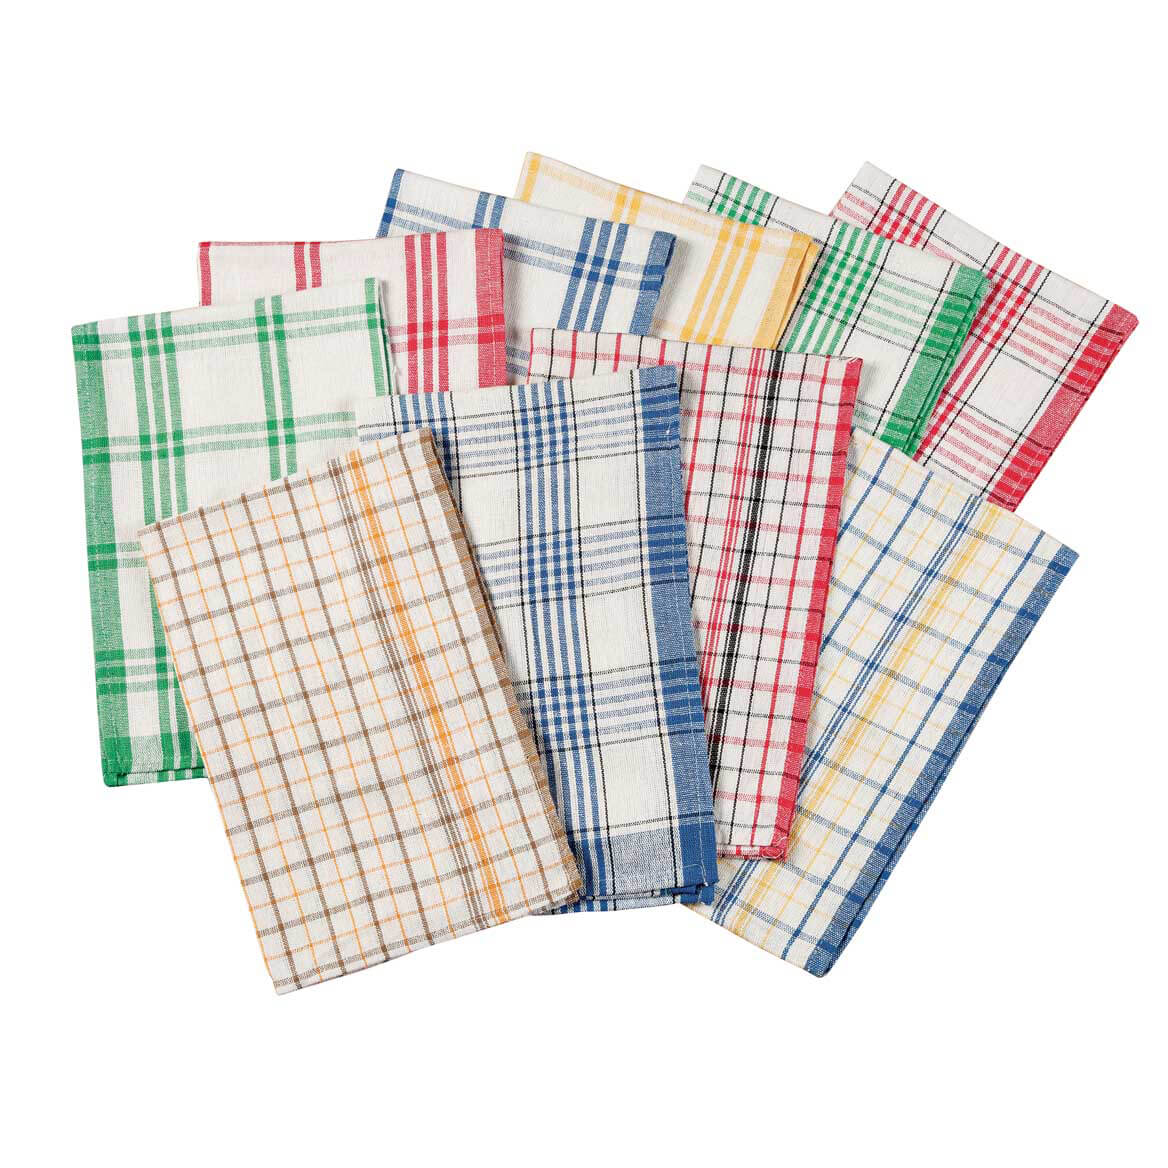 Plaid Kitchen Towels, Set of 10